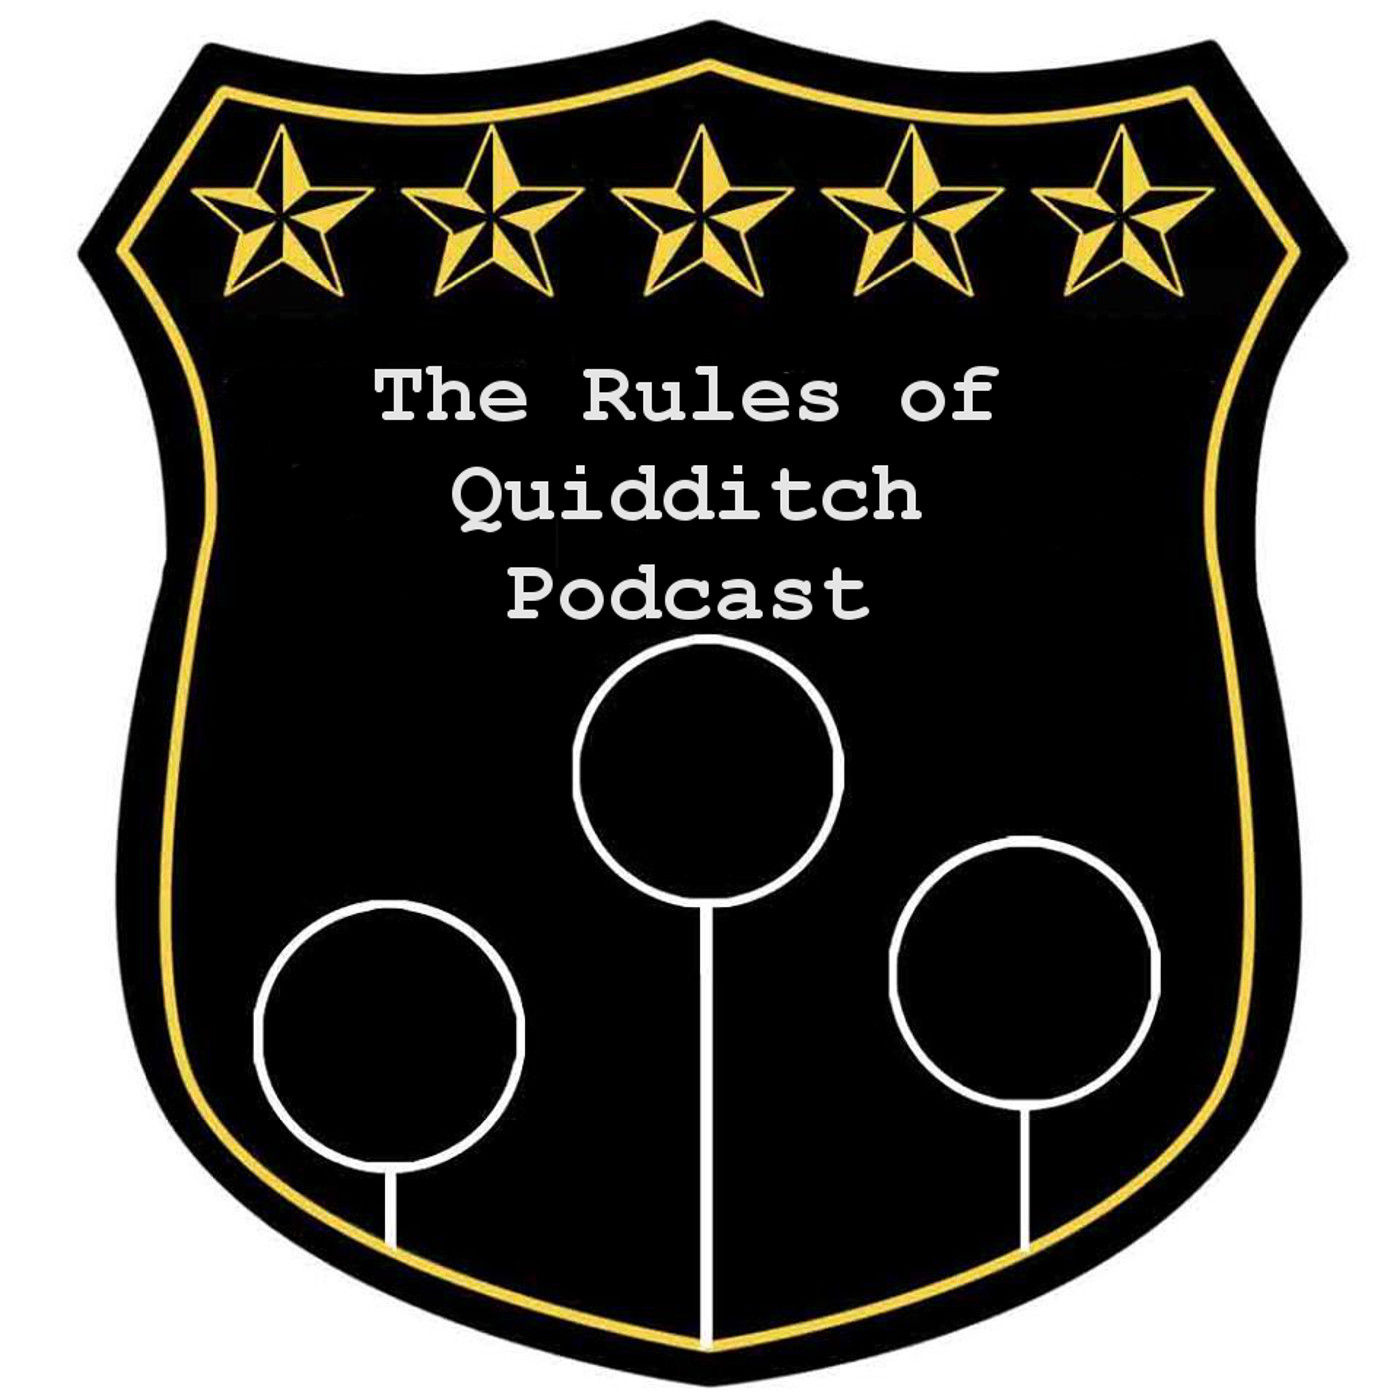 The Rules of Quidditch